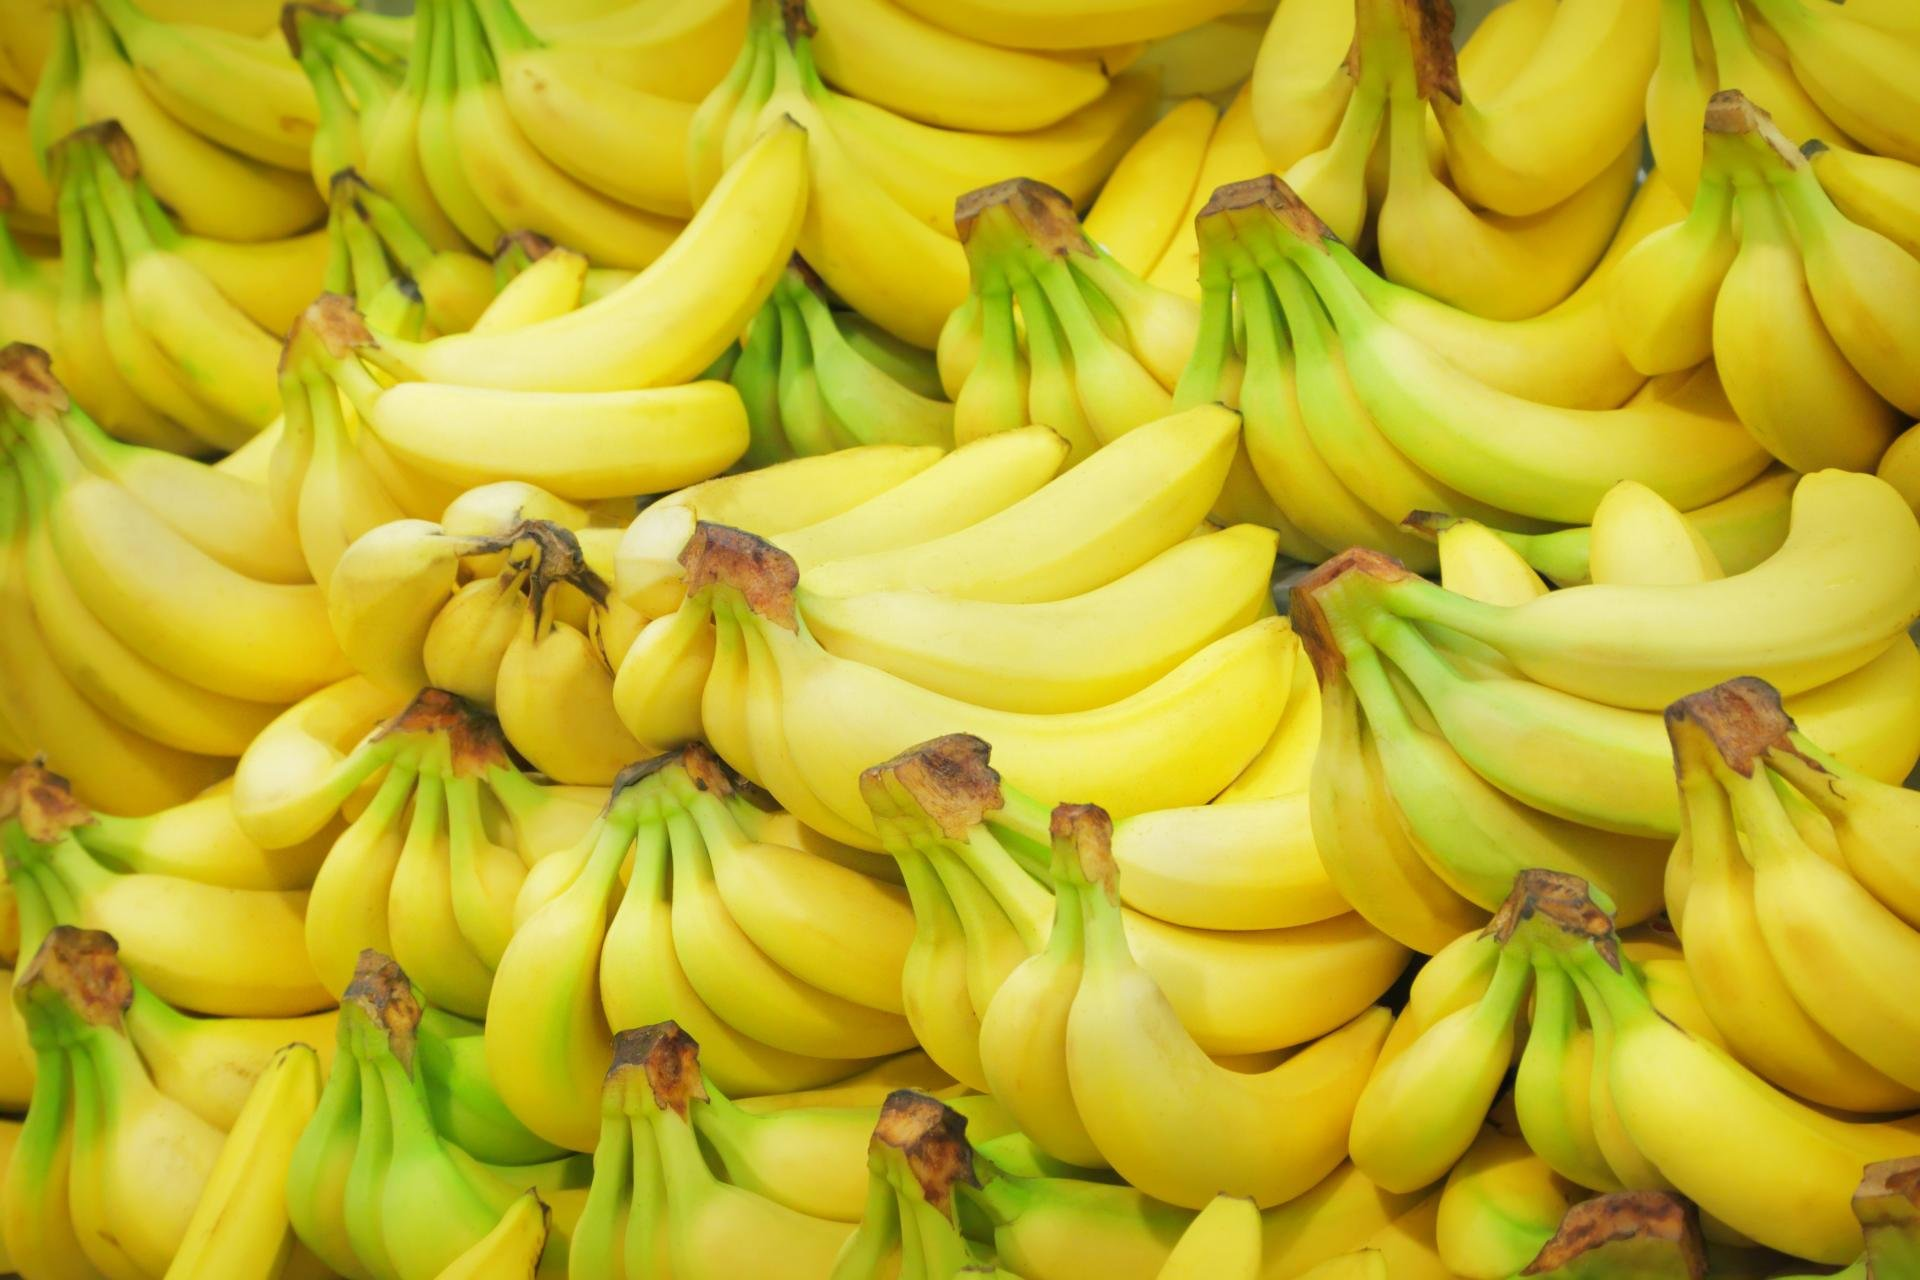 Download hd 1920x1280 Banana PC background ID:463169 for free